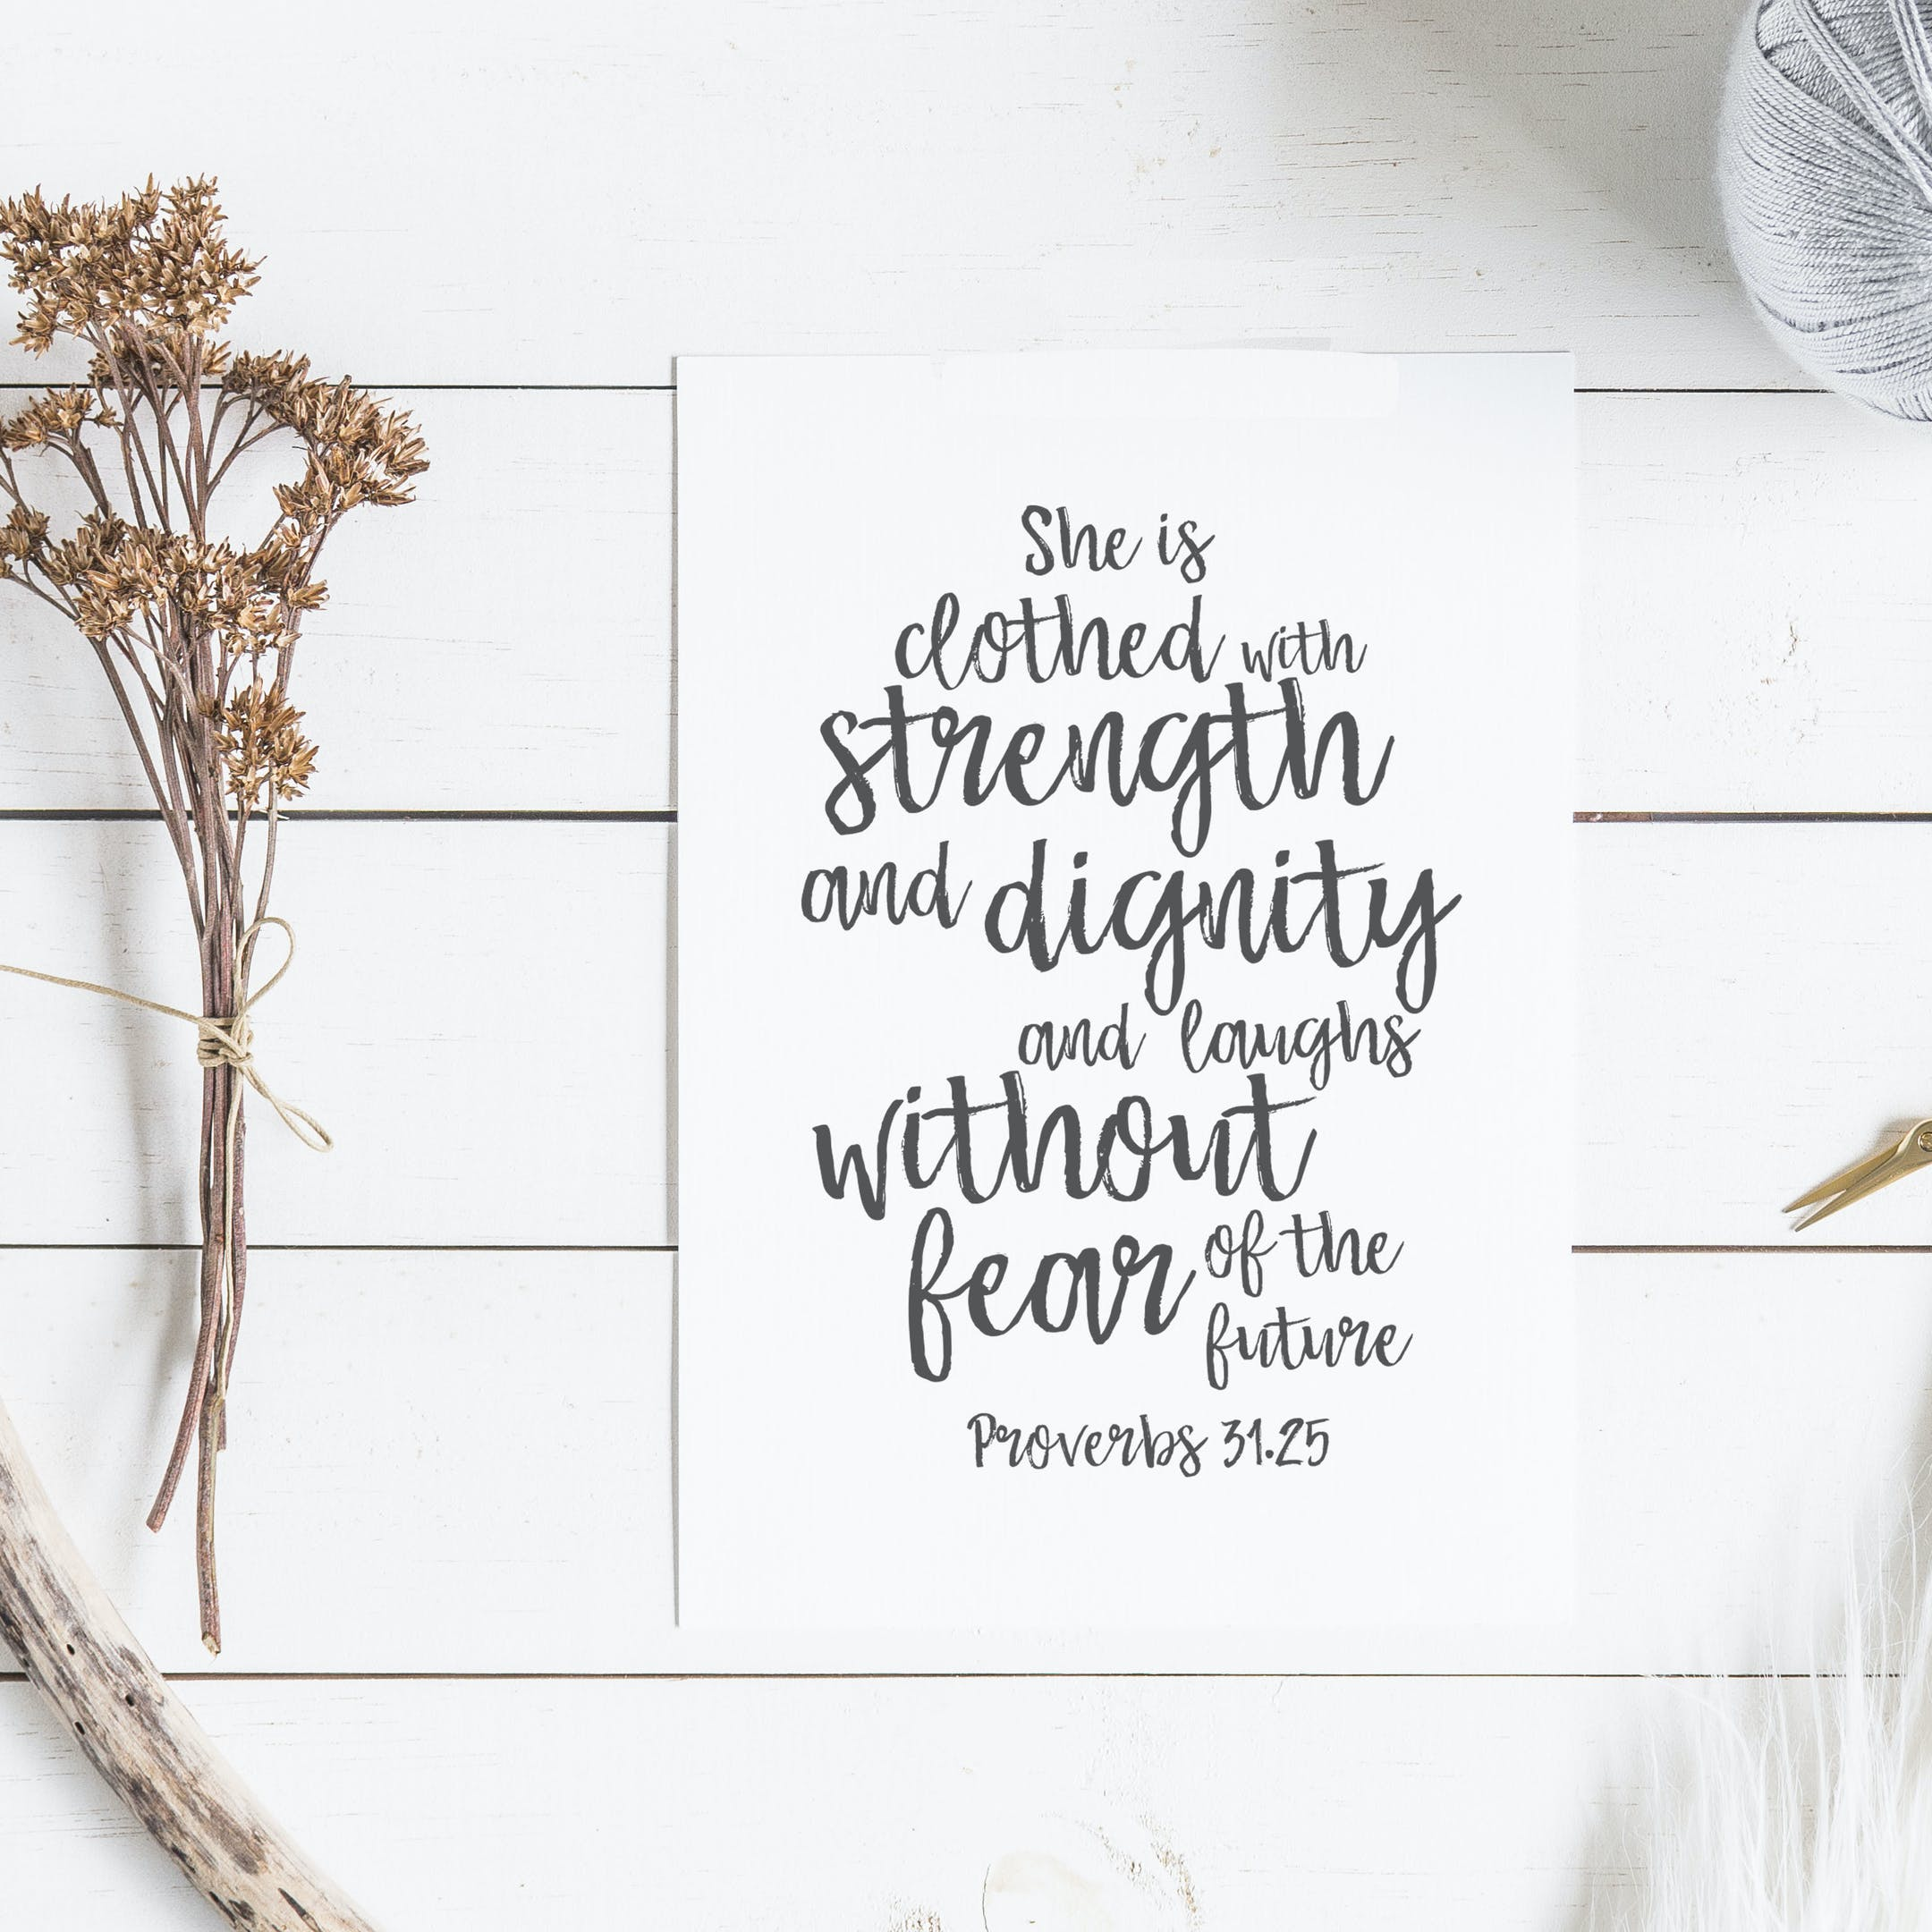 A6 She Is Clothed With Strength And Dignity Card - Proverbs 31:25 - Christian Lettering Company